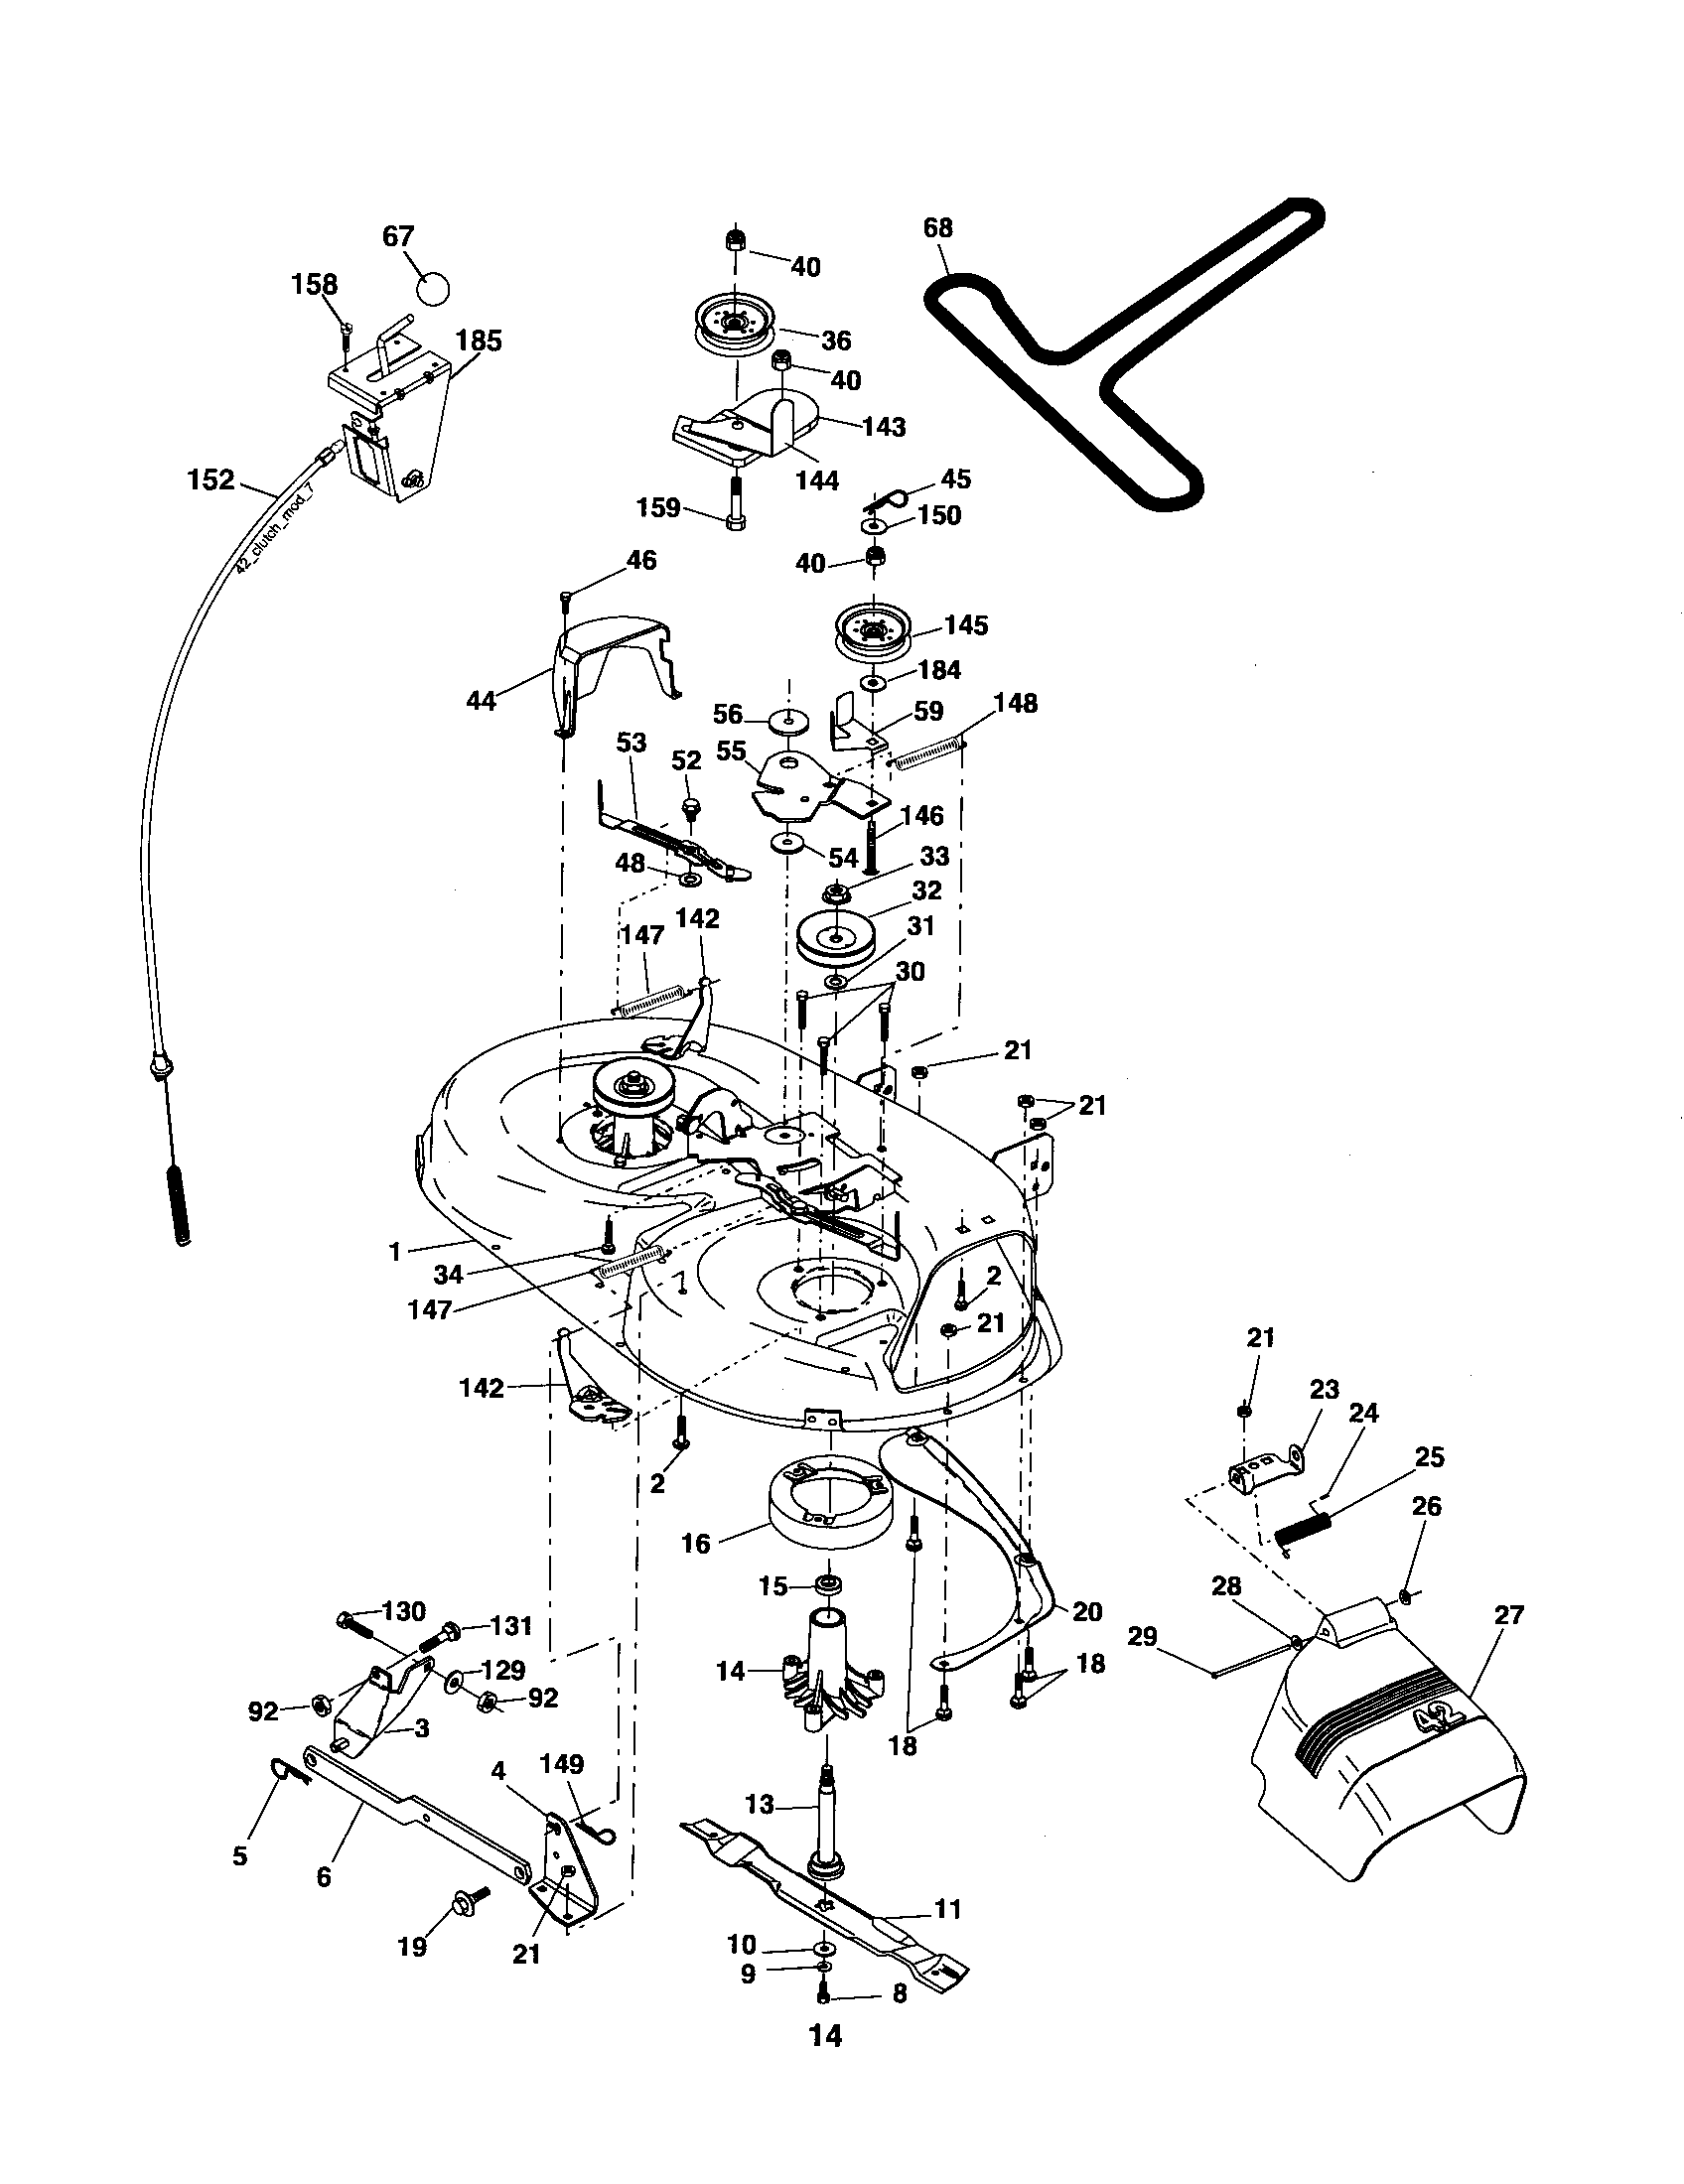 Free Diagram For Student: Poulan Pro Riding Mower Drive